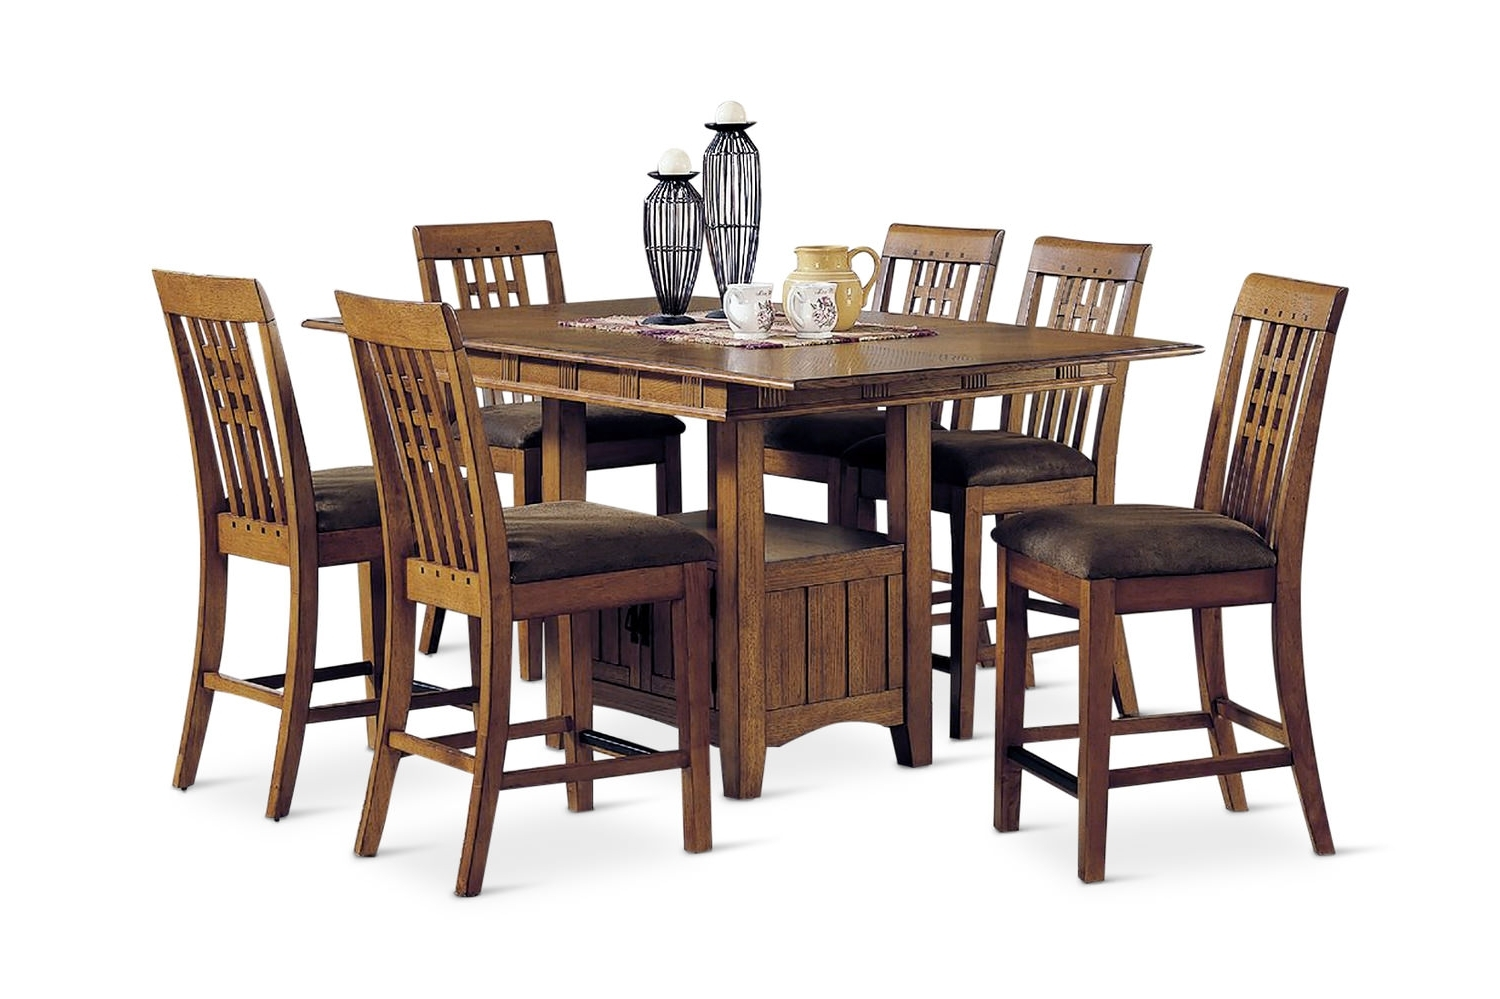 Dining Sets – Kitchen & Dining Room Sets – Hom Furniture Throughout Well Known Craftsman 7 Piece Rectangular Extension Dining Sets With Arm & Uph Side Chairs (View 11 of 25)